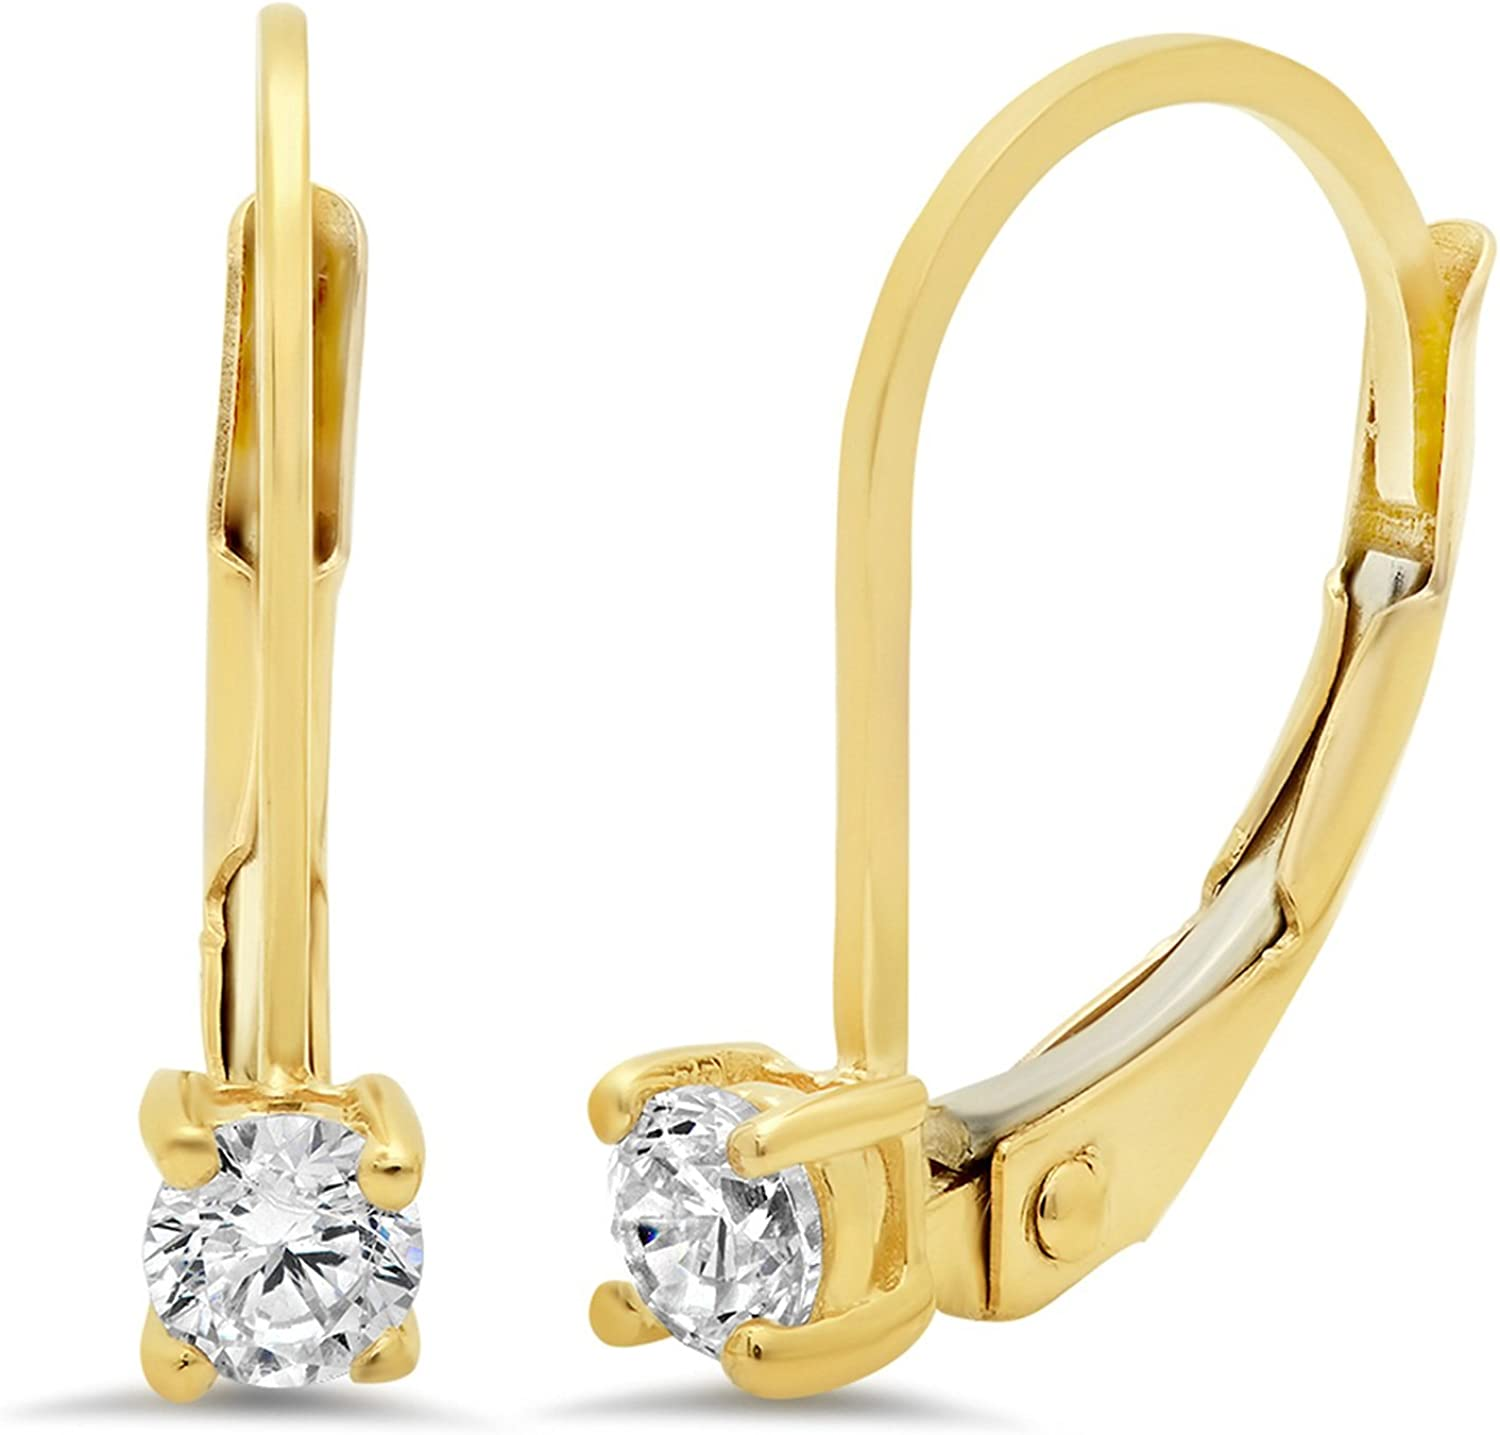 0.50 ct Round Cut ideal VVS1 Conflict Free Gemstone Solitaire Genuine Moissanite Designer Lever back Drop Dangle Earrings Solid 14k Yellow Gold